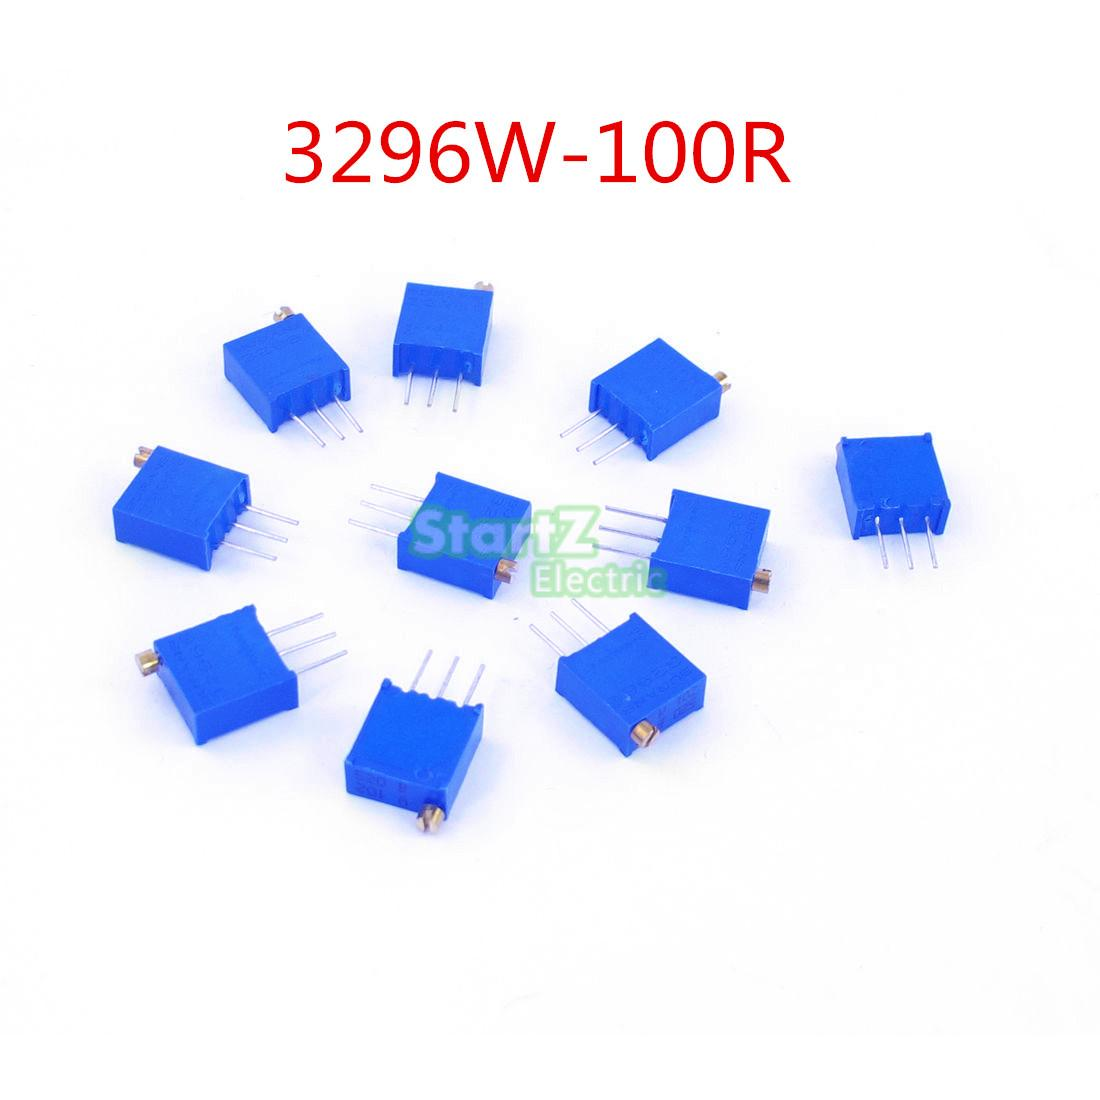 50pcs 3296w 101 Multiturn Trimmer Potentiometer 100ohm Variable Resistor Circuit High Precision 3296